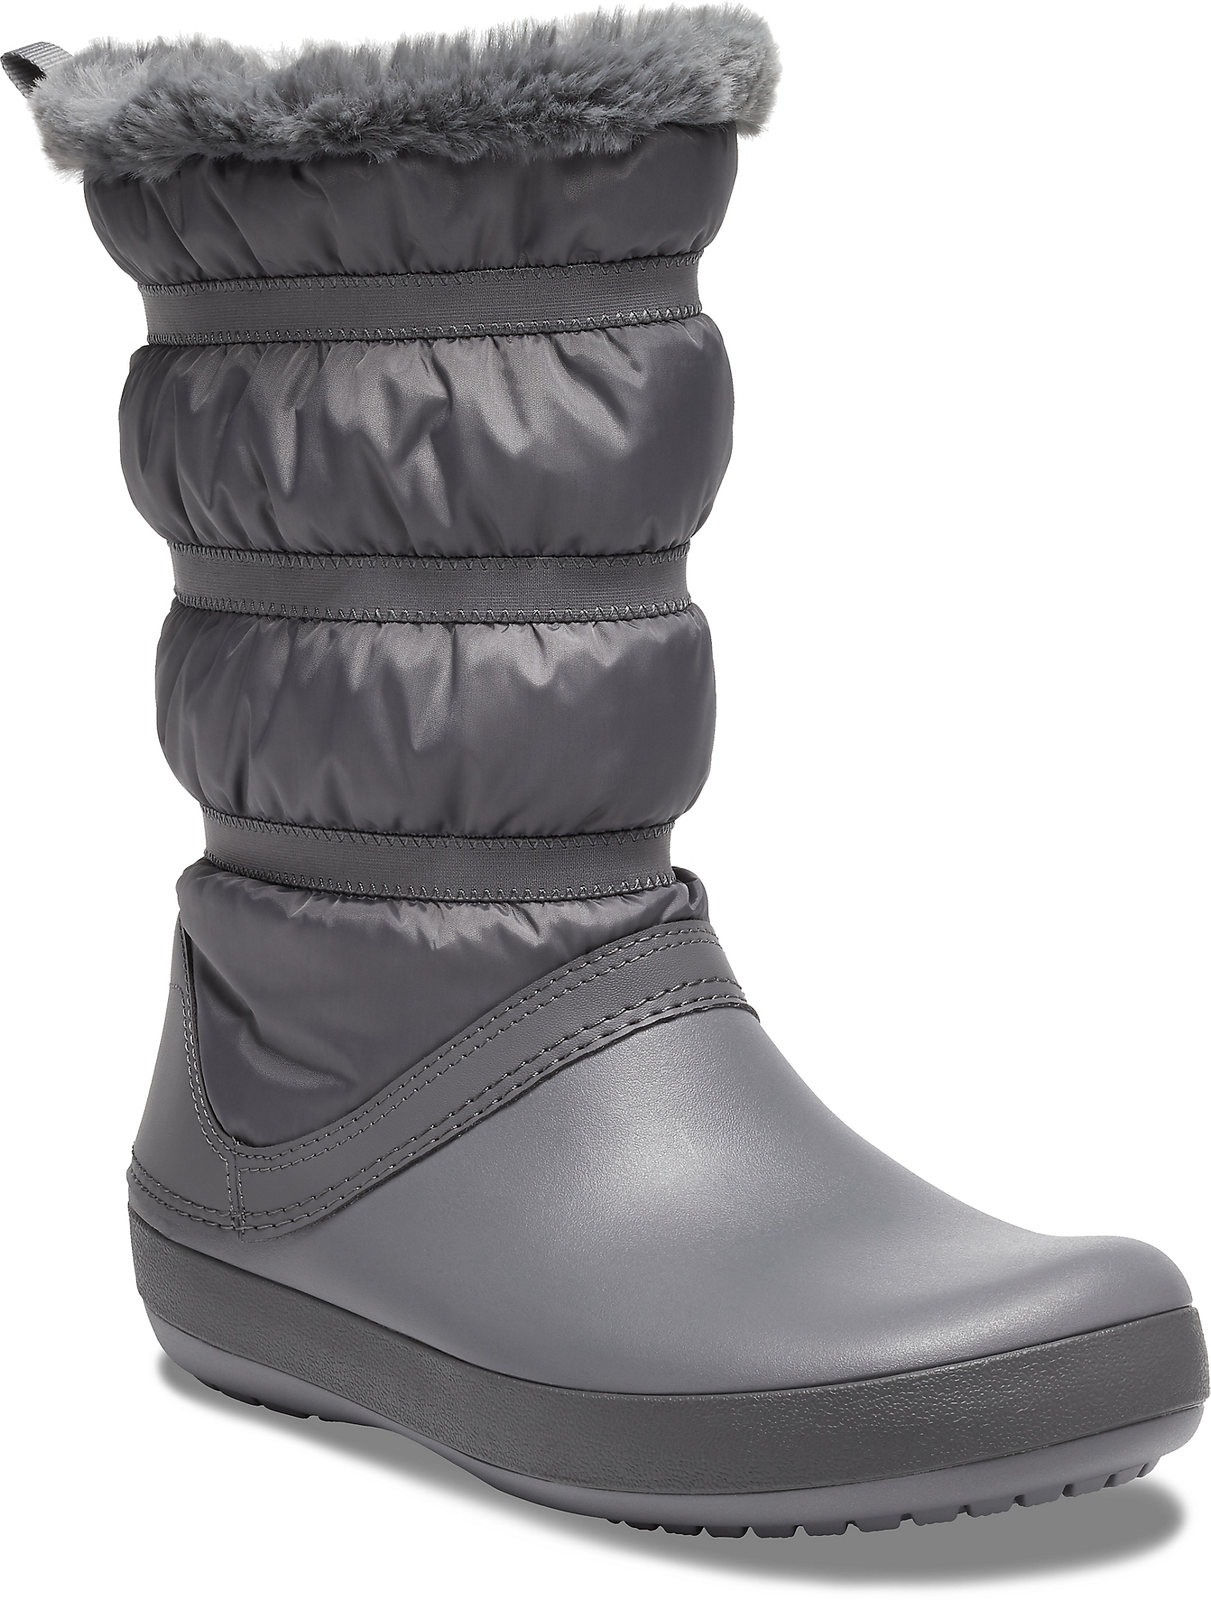 Crocs sivé snehule Crocband Winter Boot Charcoal - 37/38